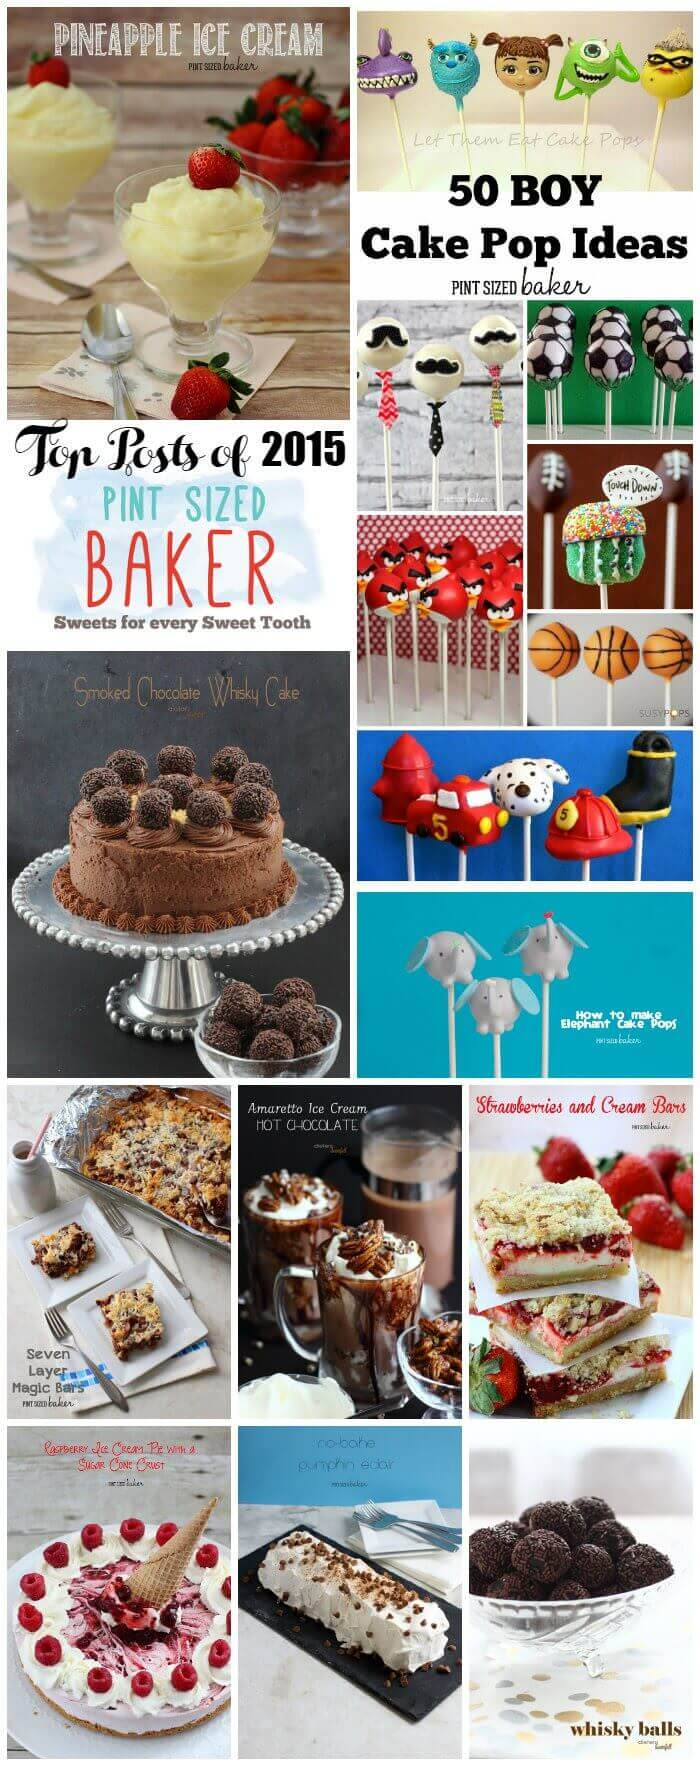 Enjoy the best of 2015 from Pint Sized Baker! A great collection of cake pops, bars, and frozen treats!